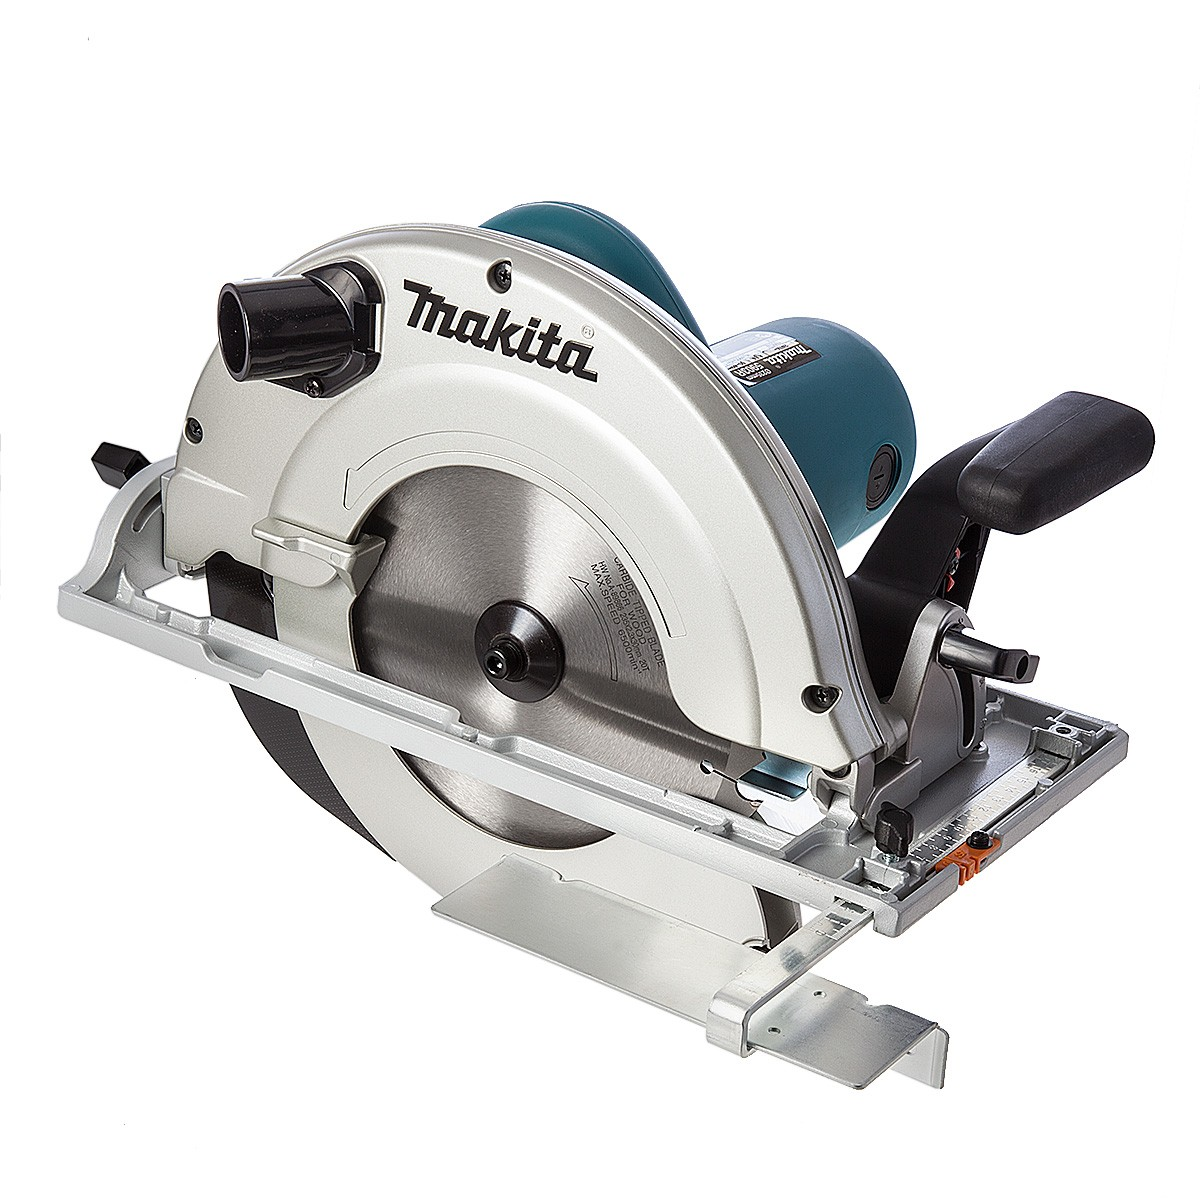 "Makita 5903RK Circular Saw 9"" / 235mm with Case 110v"